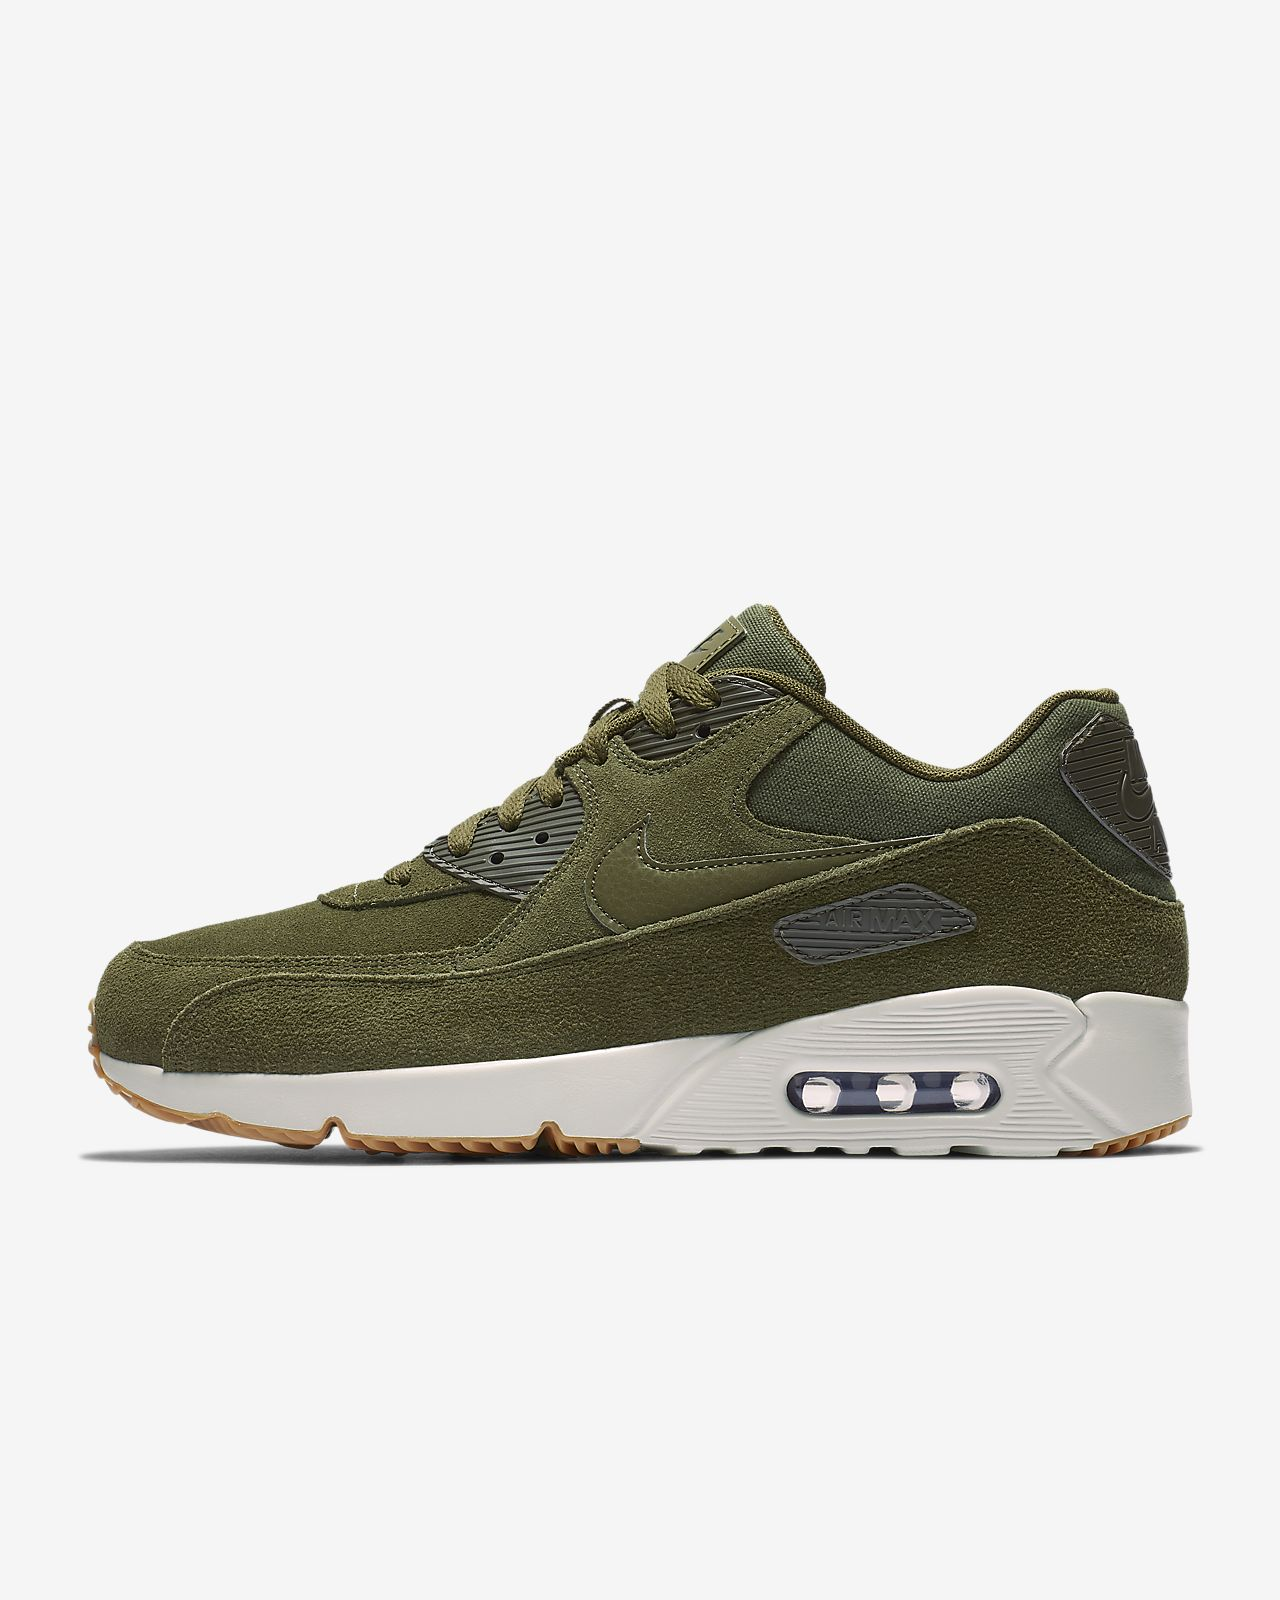 66b04366c96f Nike Air Max 90 Ultra 2.0 Men s Shoe. Nike.com